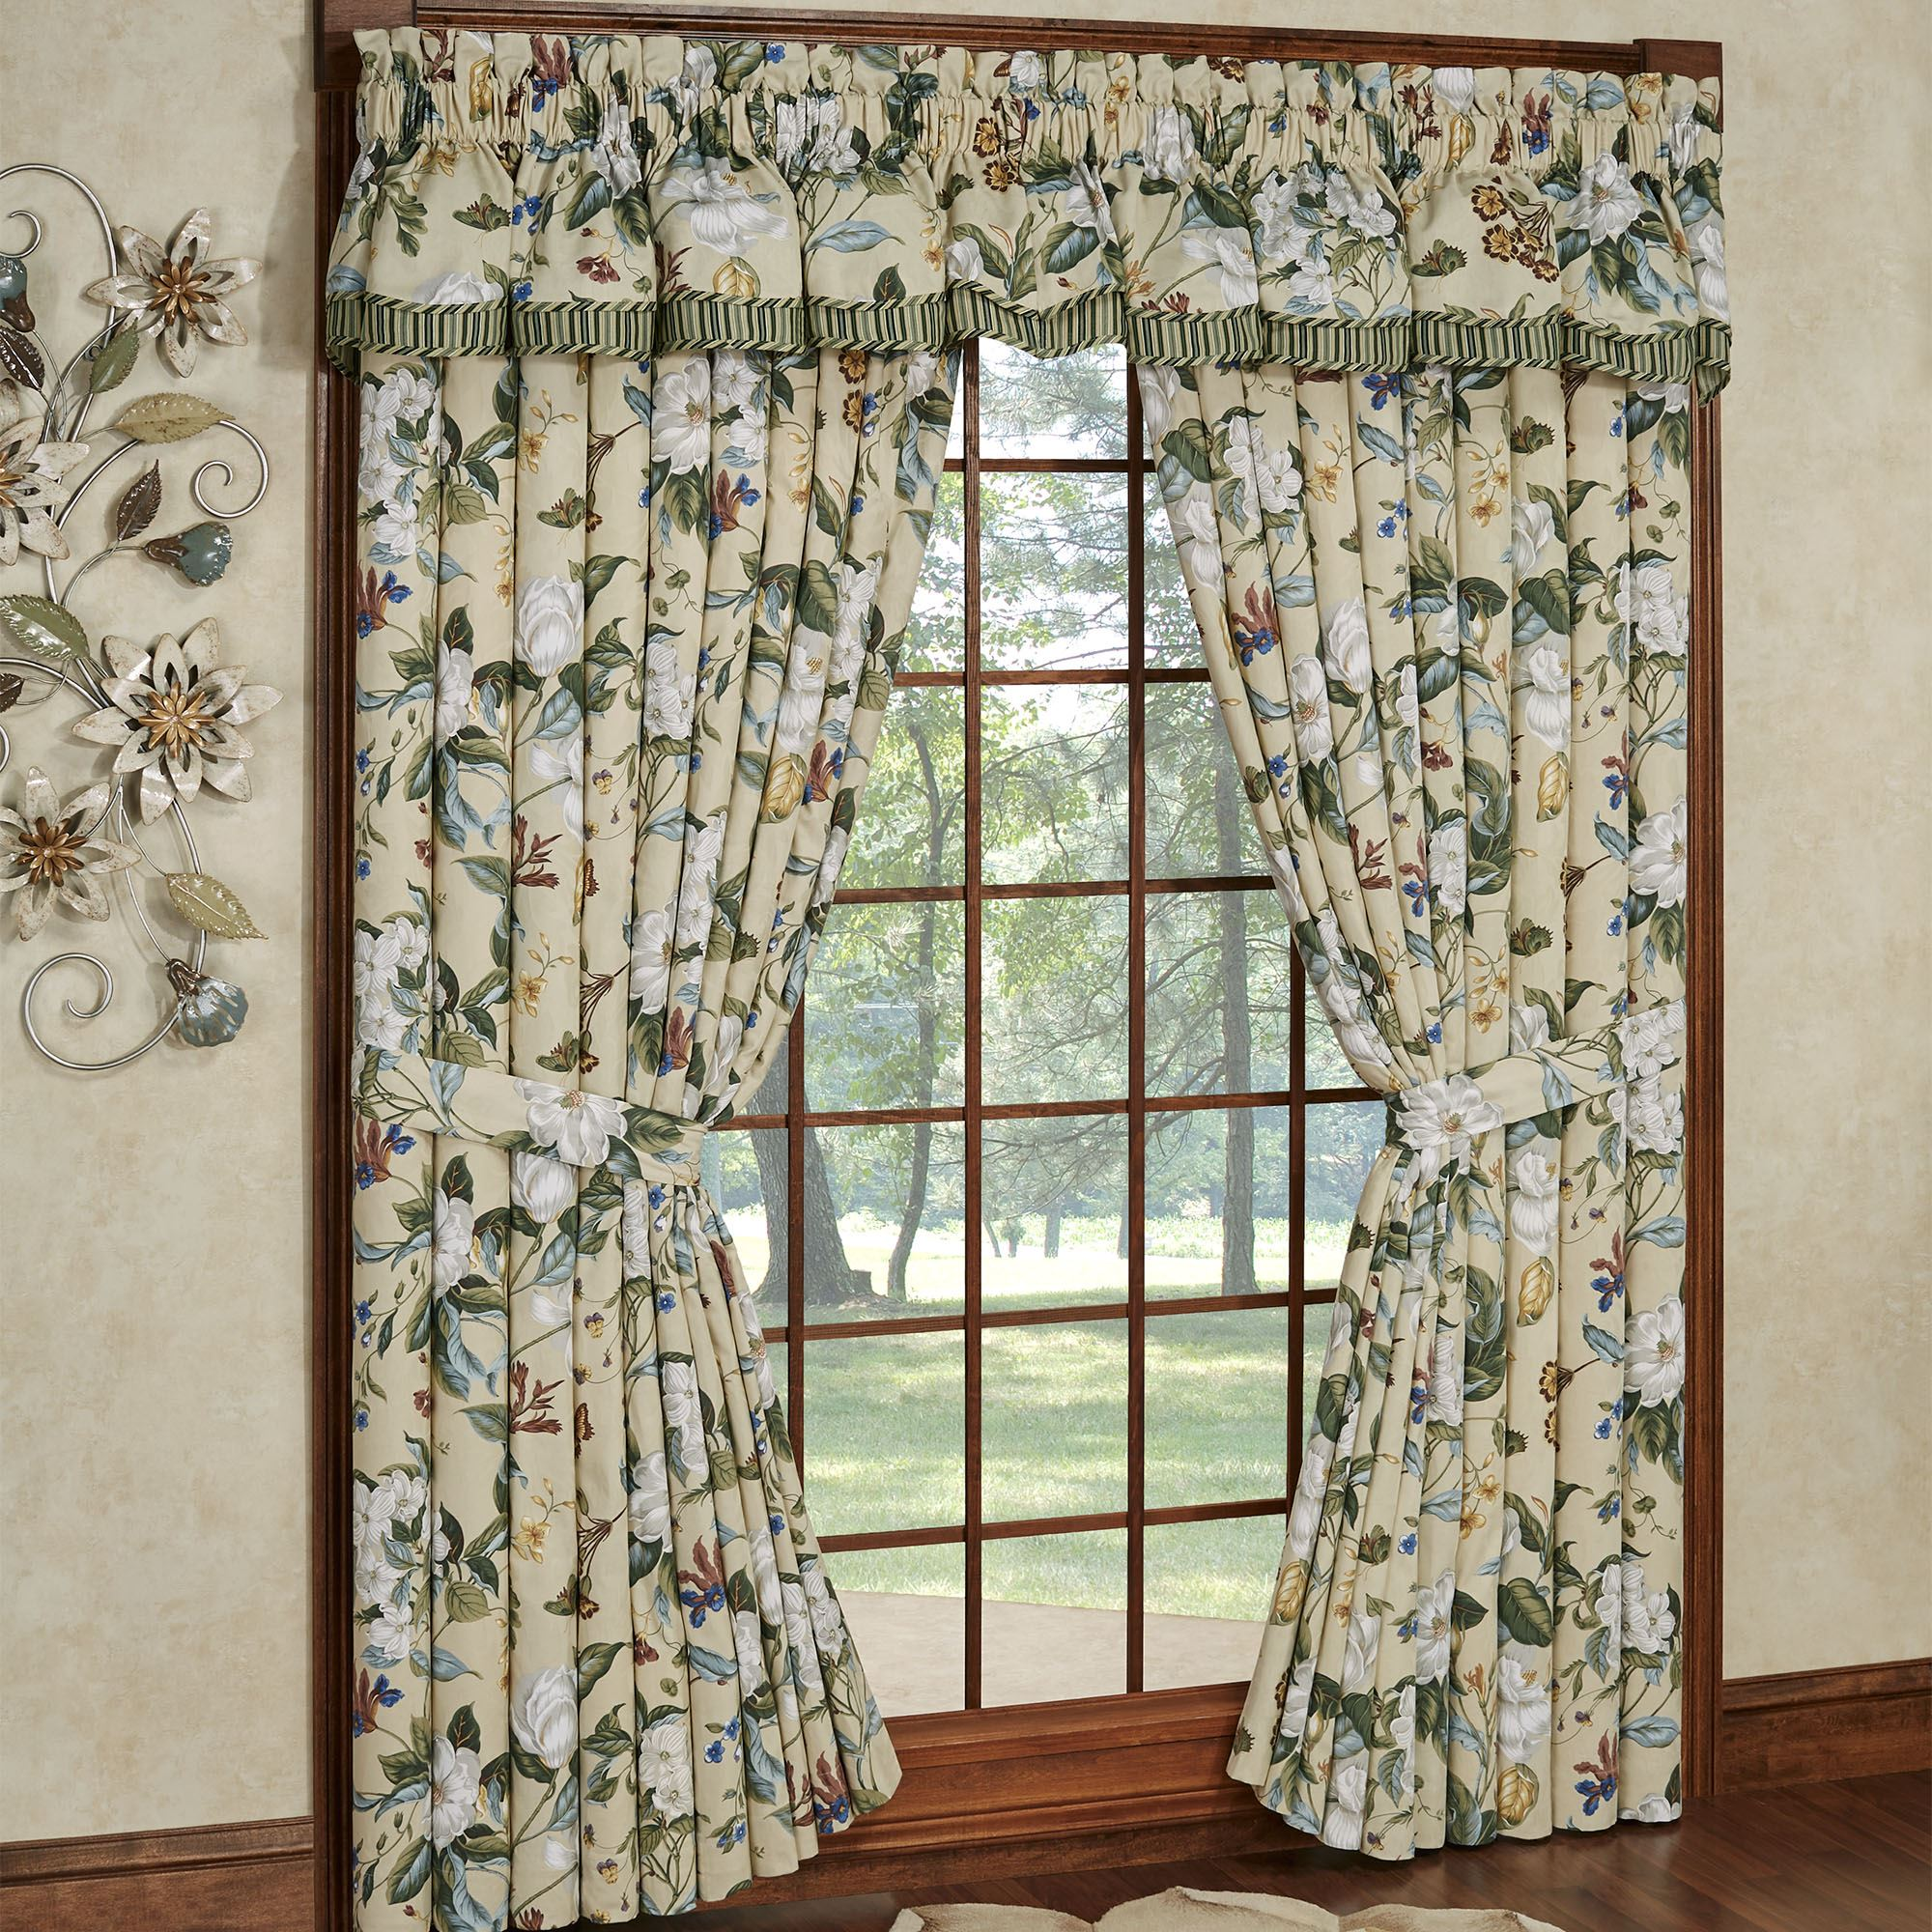 Garden III Floral Window Treatments